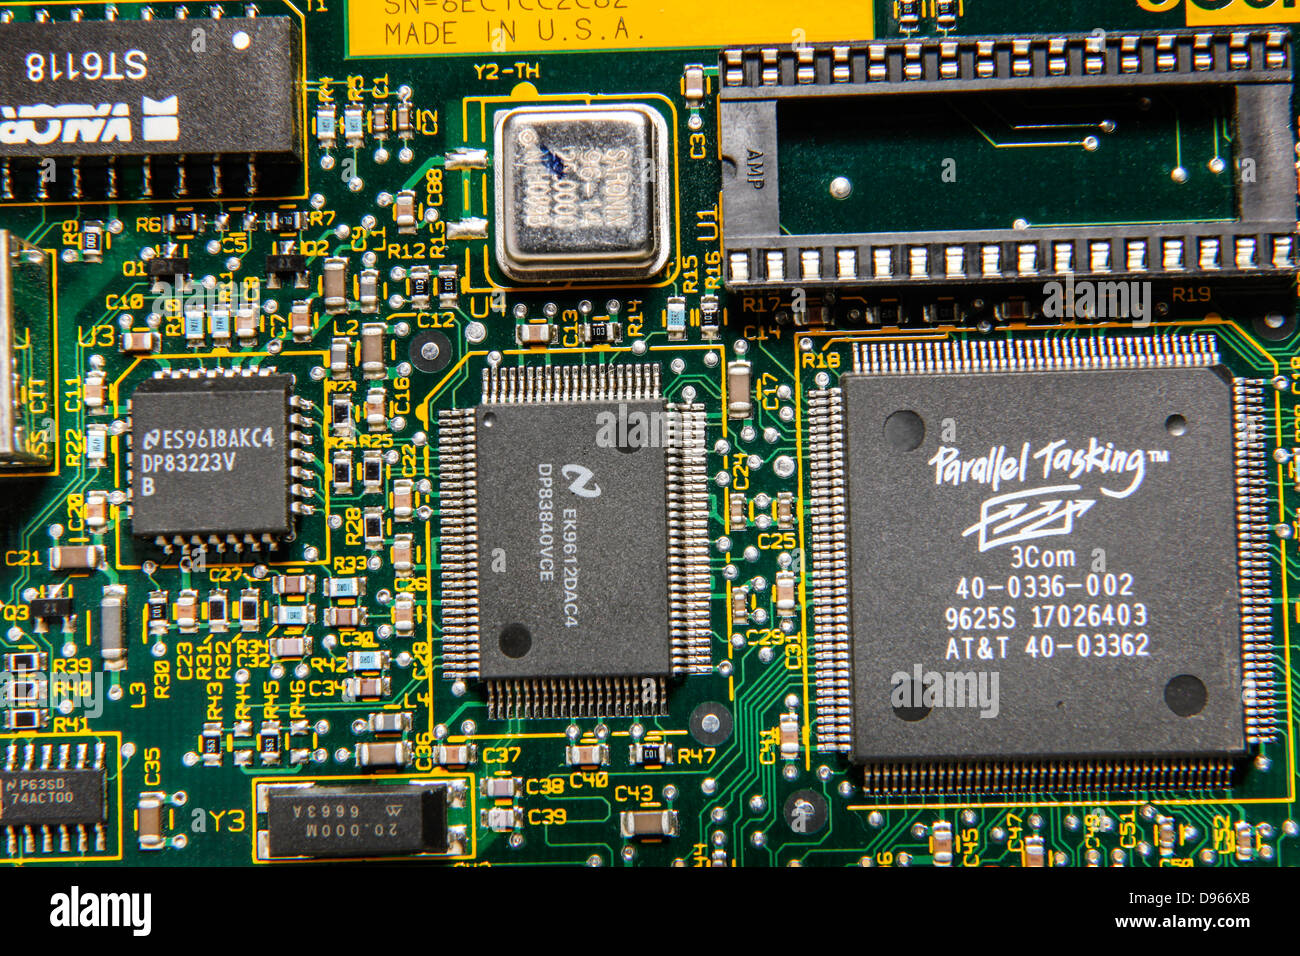 Motherboard Components List: Close-up Macro Photography Of A Parts And Motherboard And